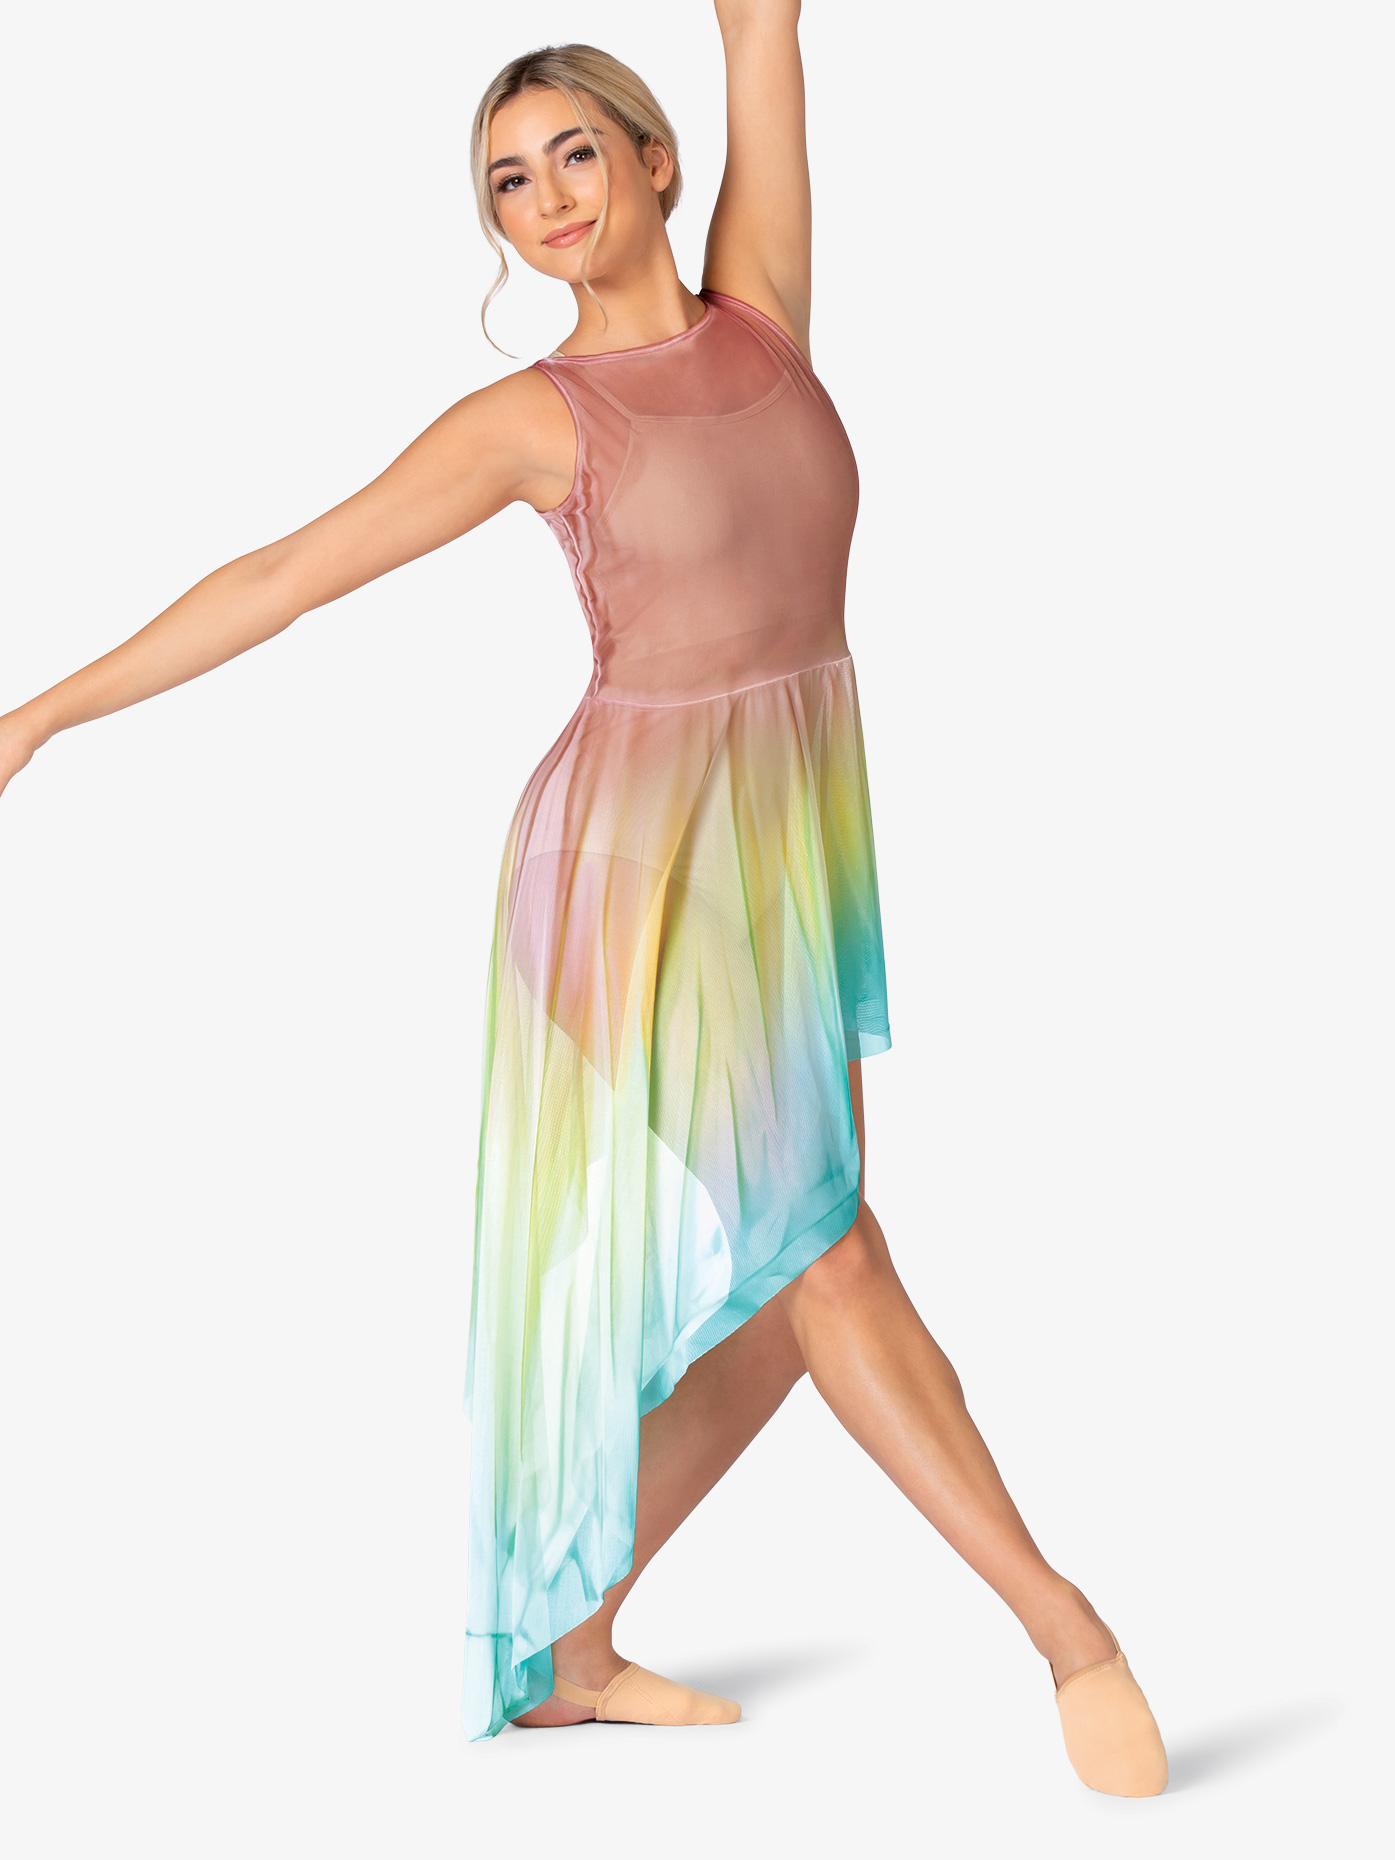 Watercolour Adult Painted Asymmetrical Side Drape Tank Lyrical Dress WC233